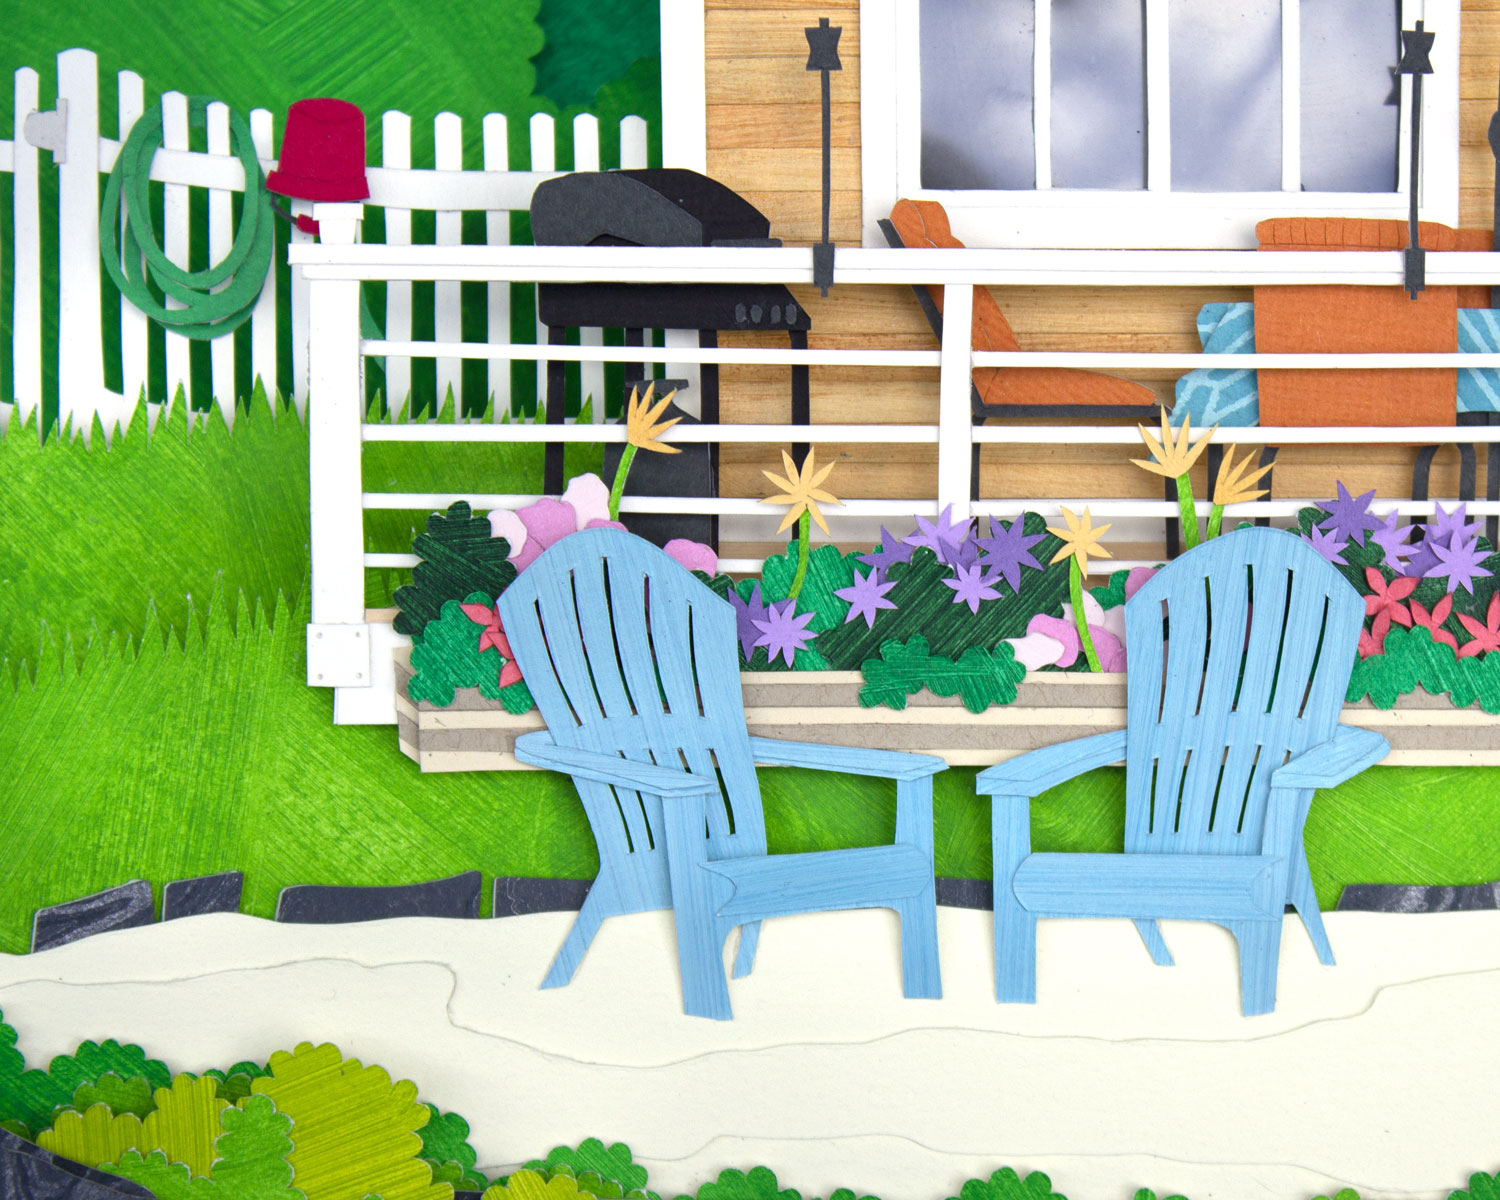 Lakehouse: Chairs, grill, flowers, and fencing detailing